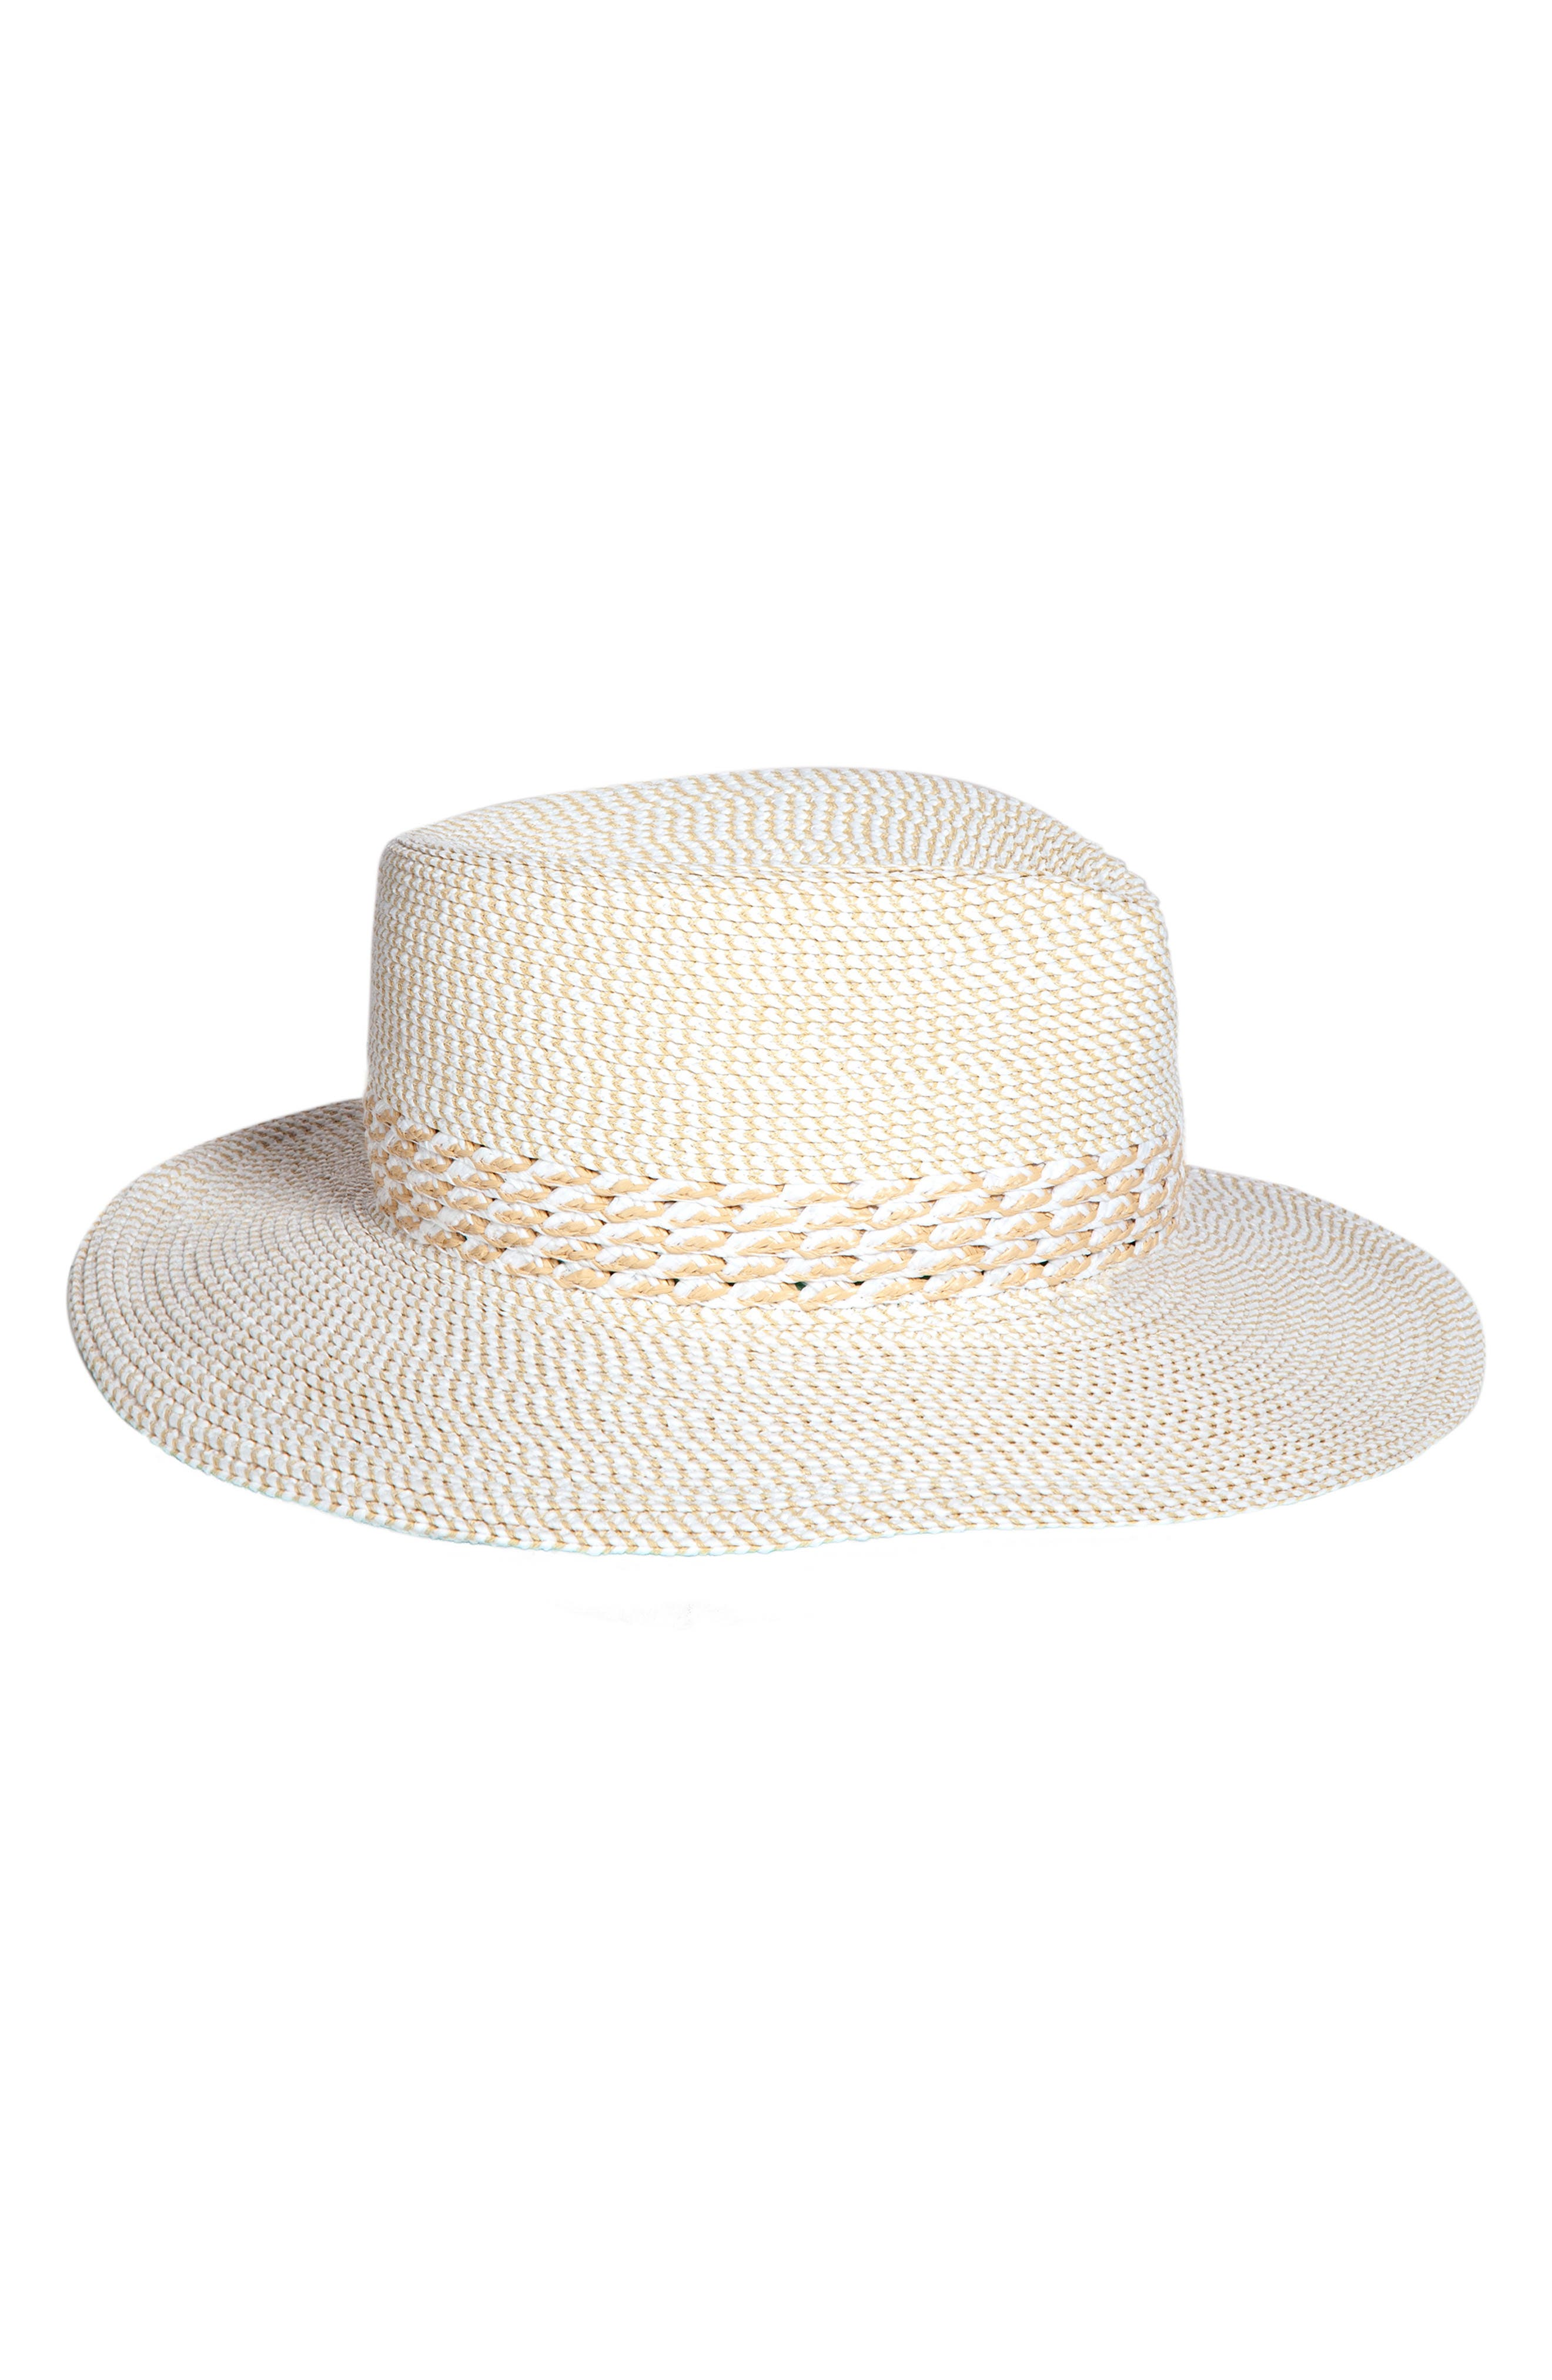 Bayou Packable Squishee<sup>®</sup> Fedora,                         Main,                         color, WHITE MIX